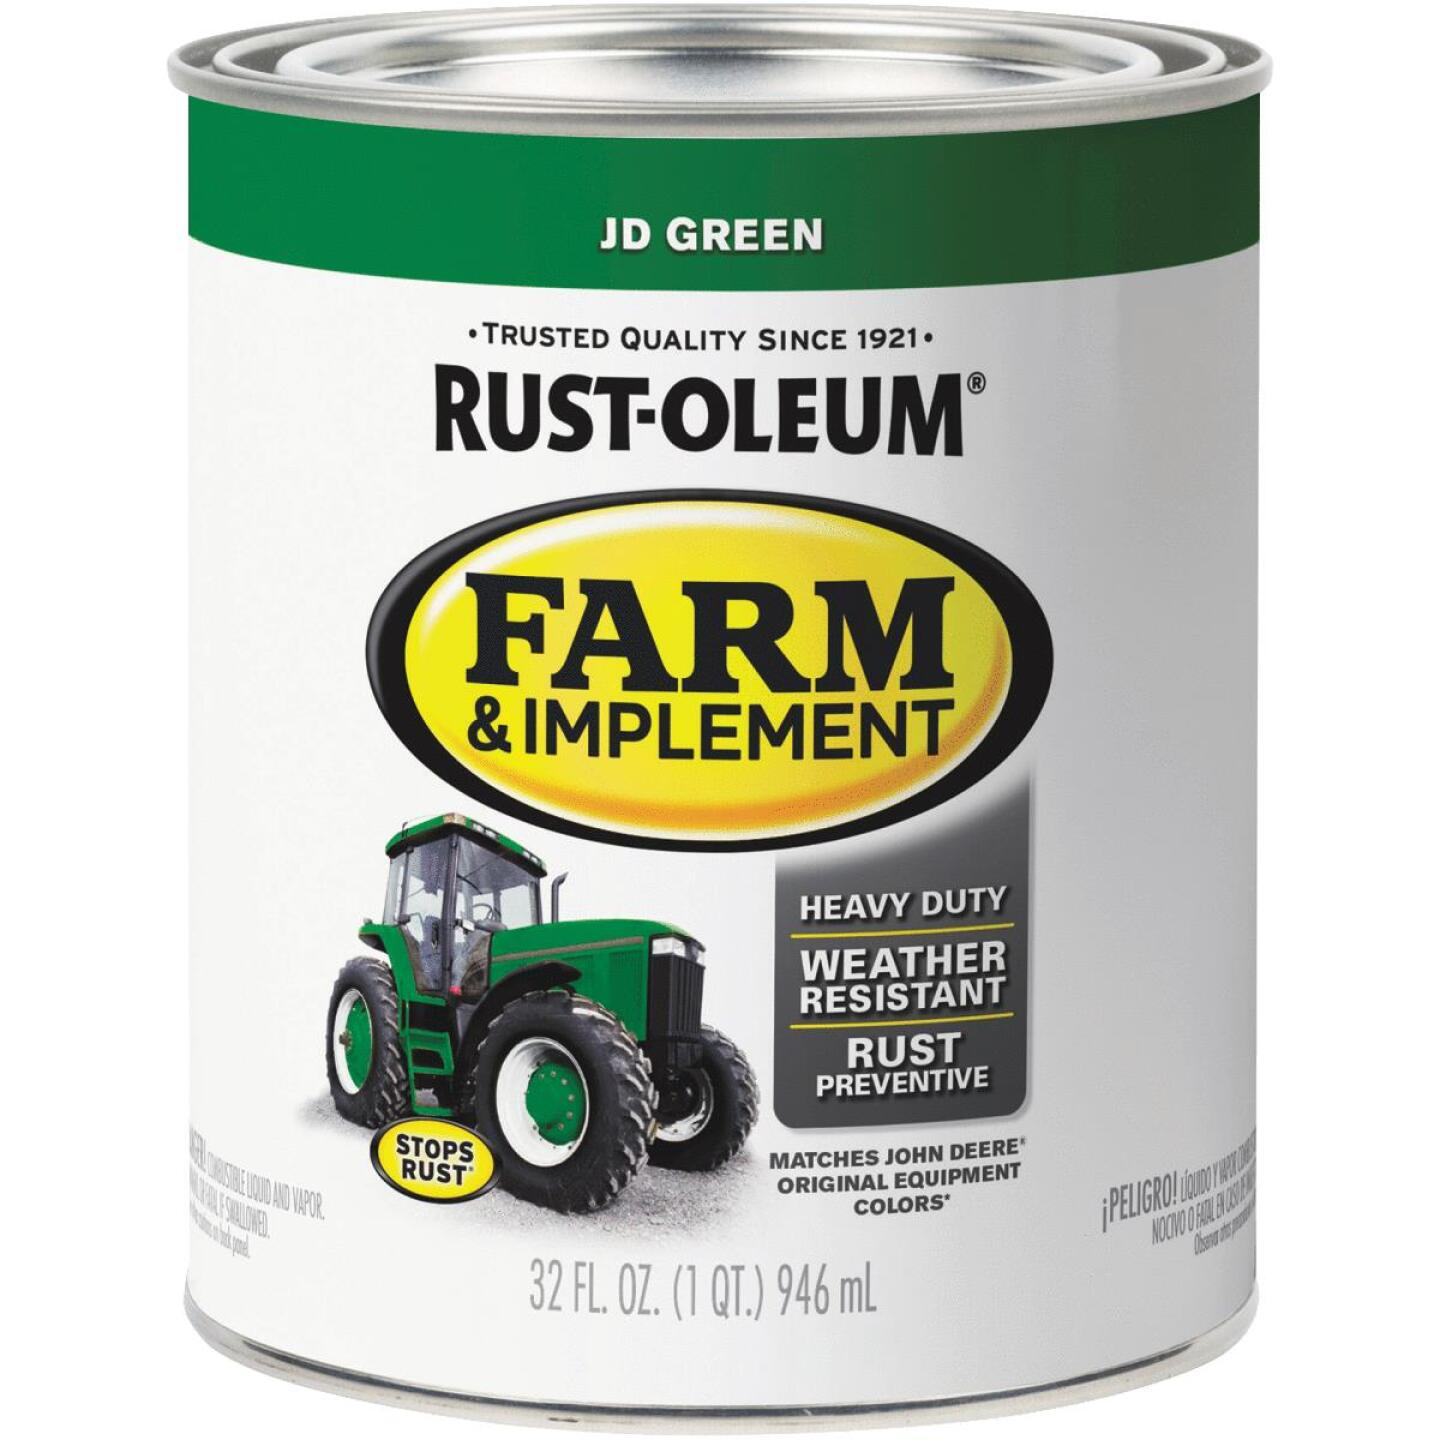 Rust-Oleum 1 Quart JD Green Gloss Farm & Implement Enamel Image 1